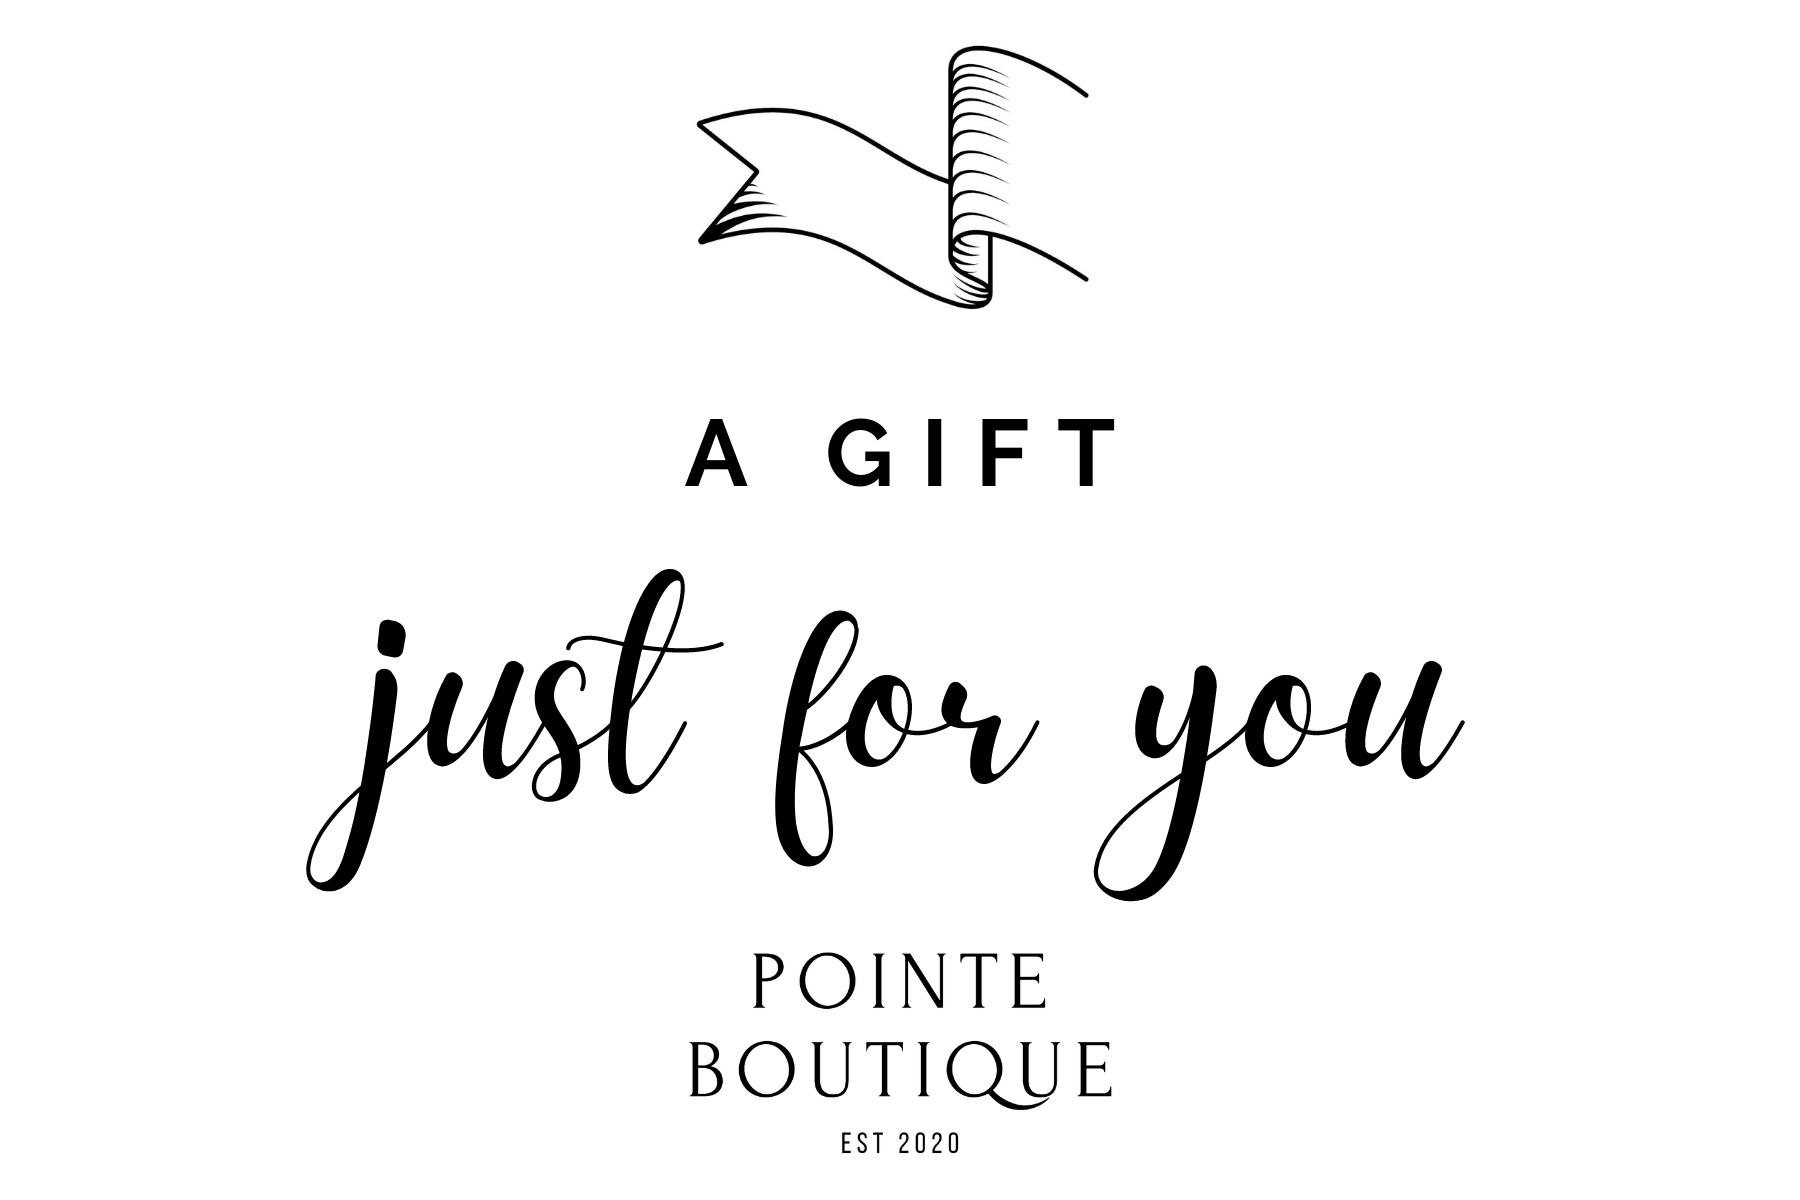 Pointe Boutique Online Gift Card Pointe Boutique Pointe Boutique